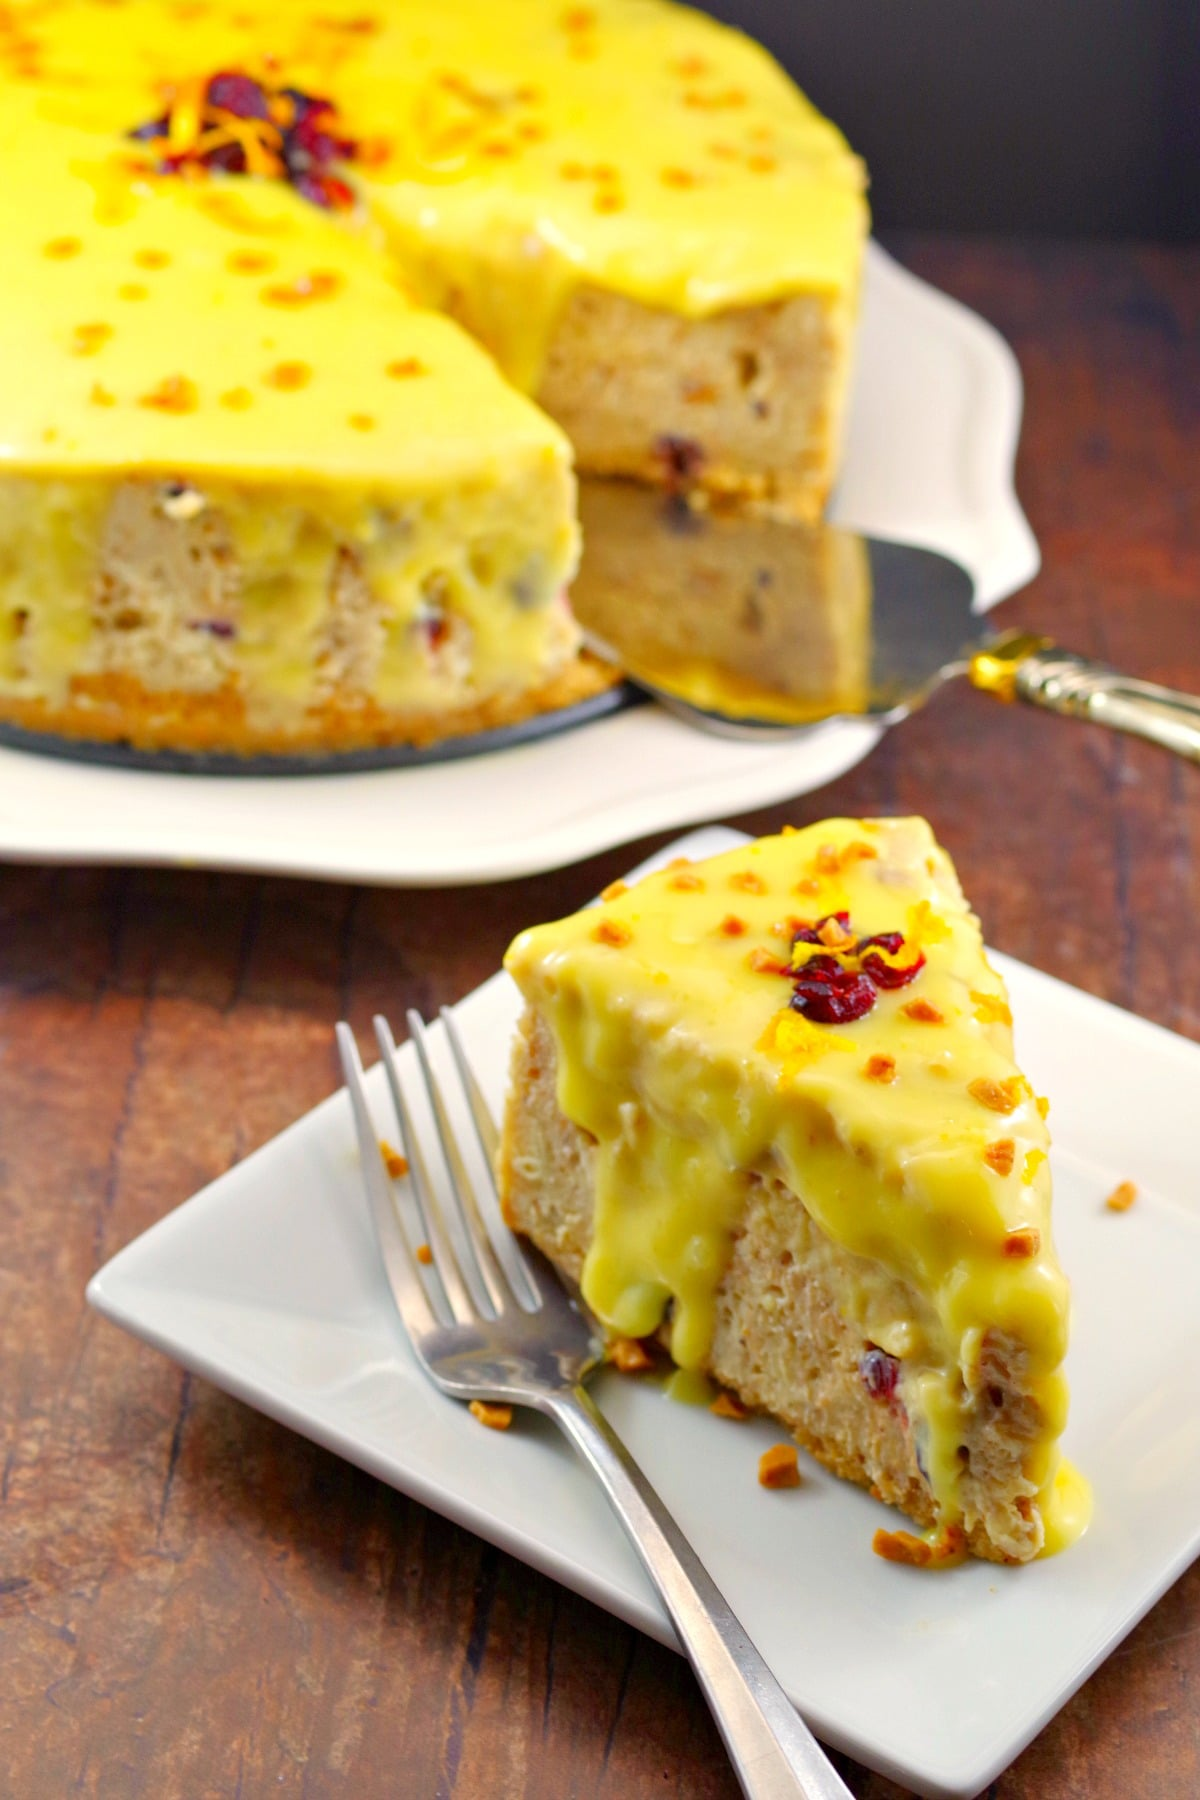 Cranberry Bread Pudding Holiday Cheesecake Recipe   #cheesecake #holiday #bread pudding